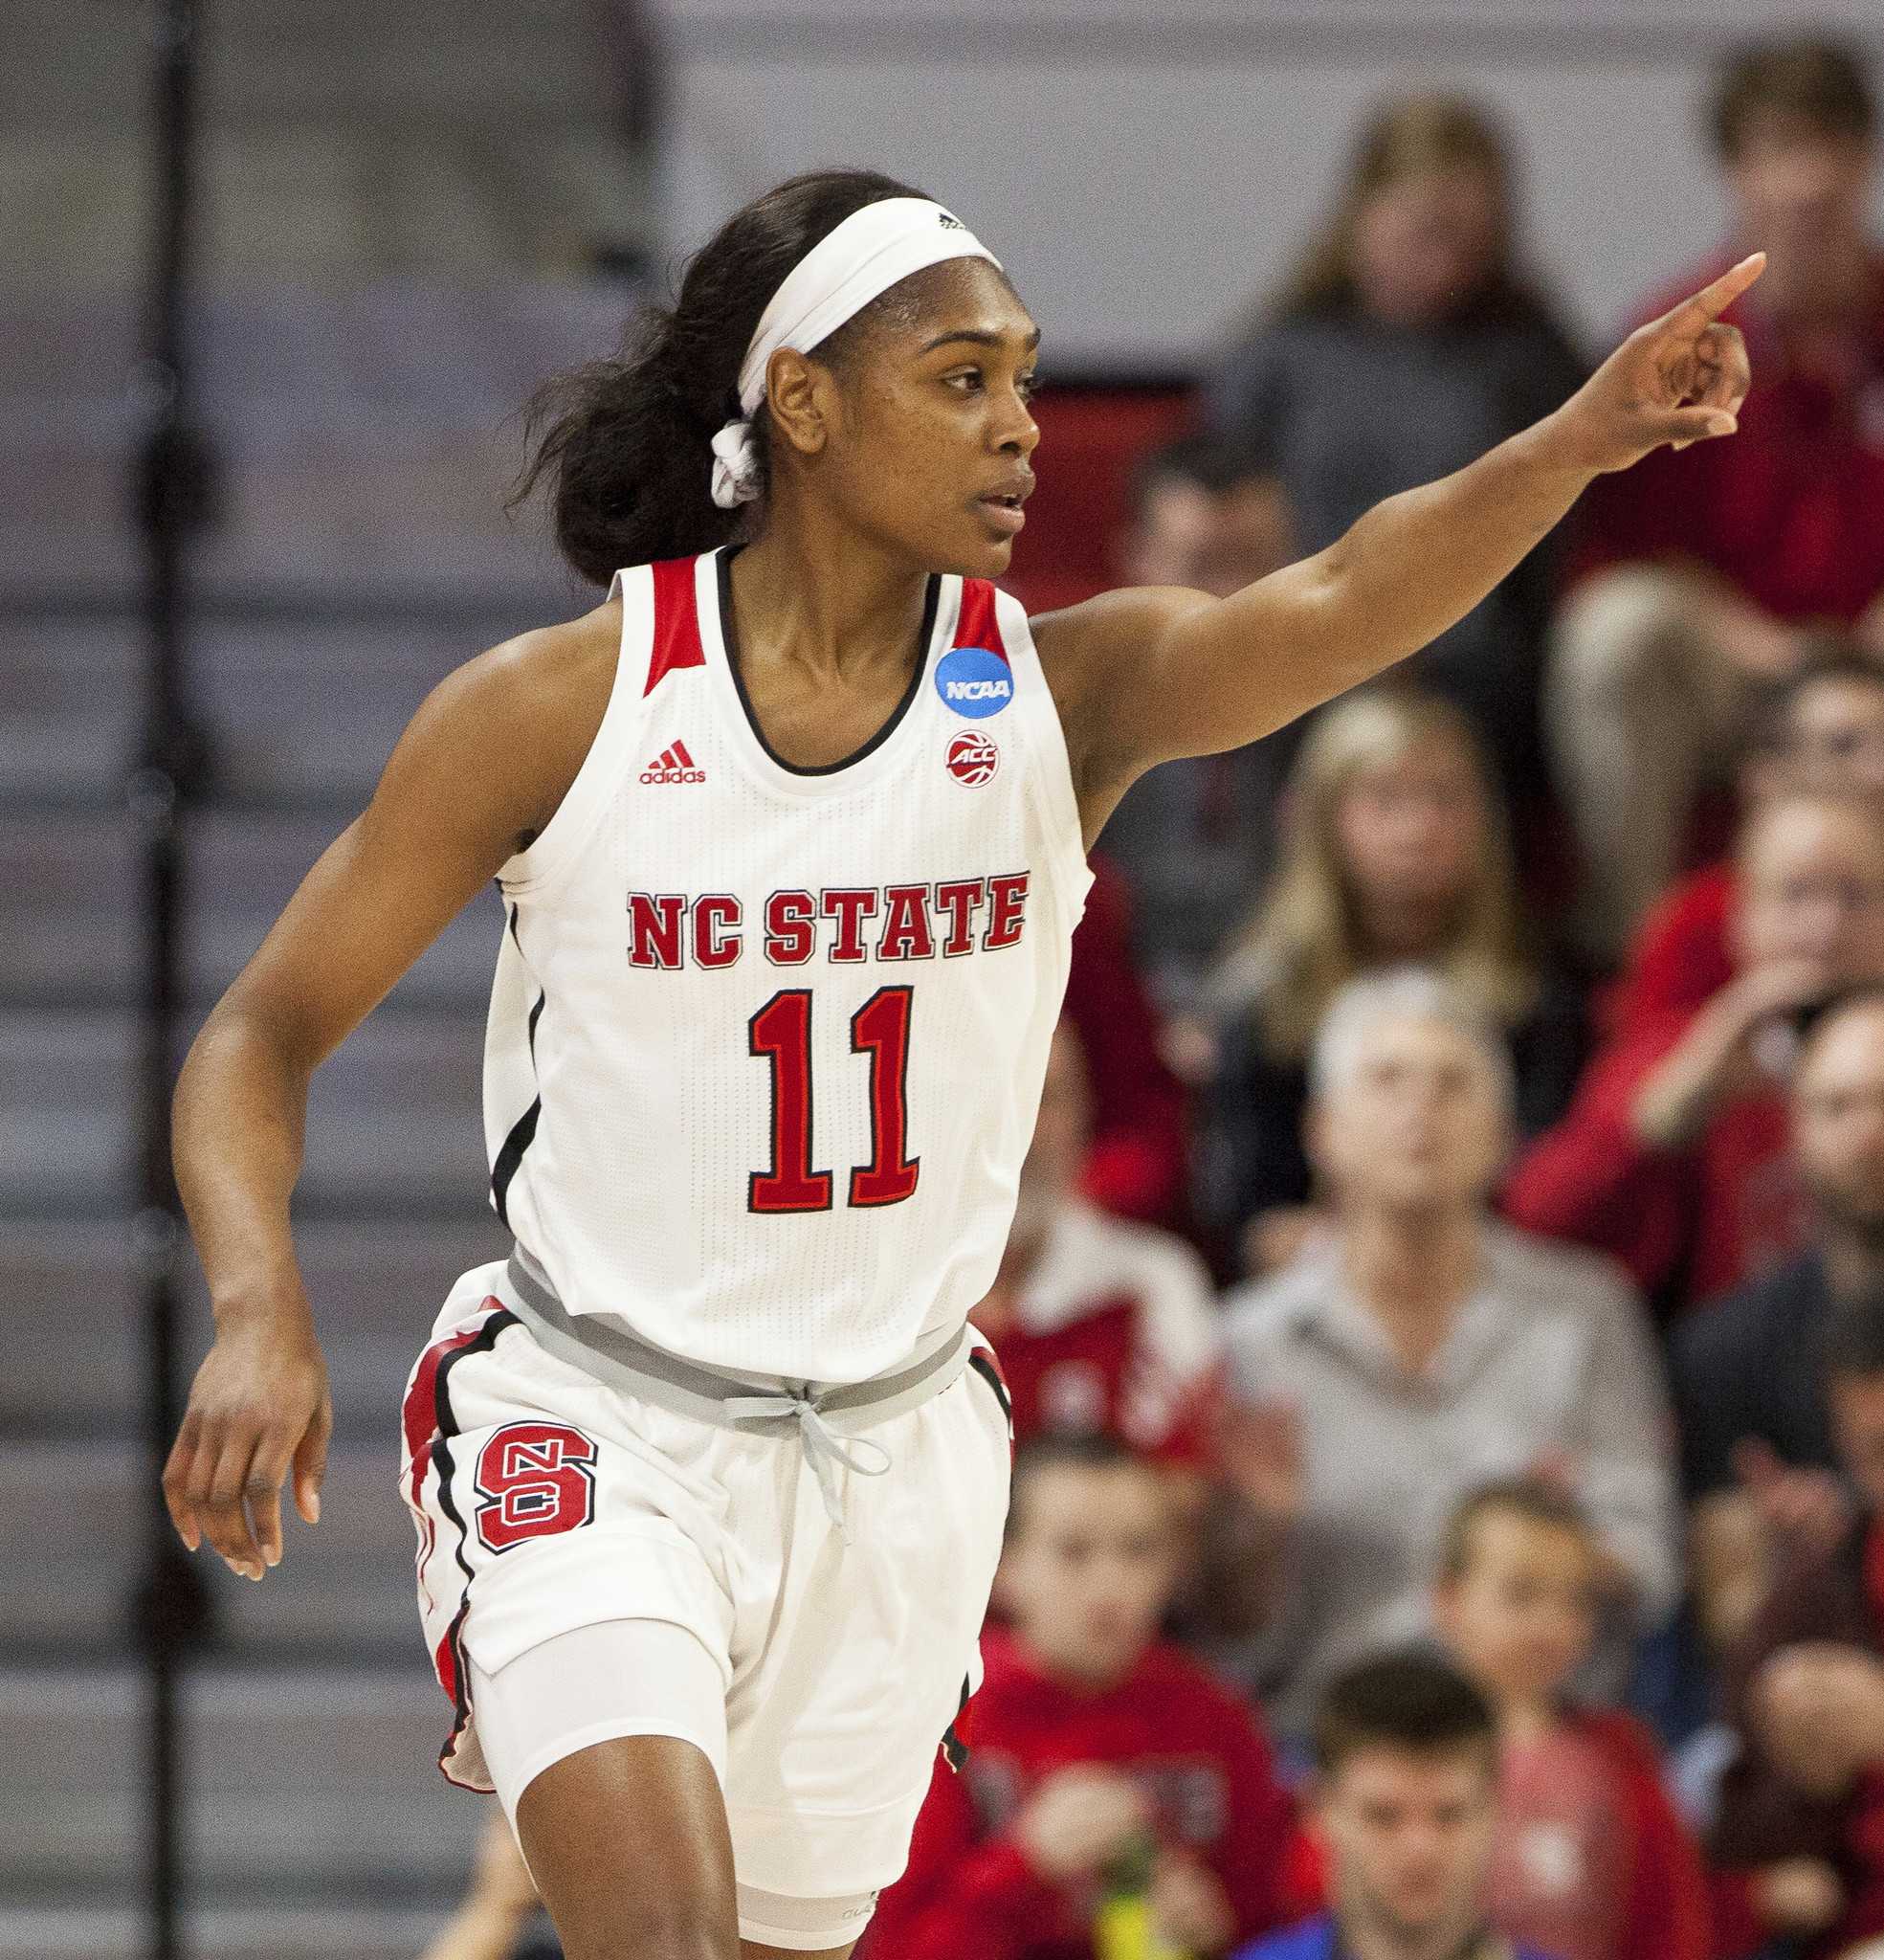 Bs-sp-bkw--ncaa-maryland-nc-state-318-20180317